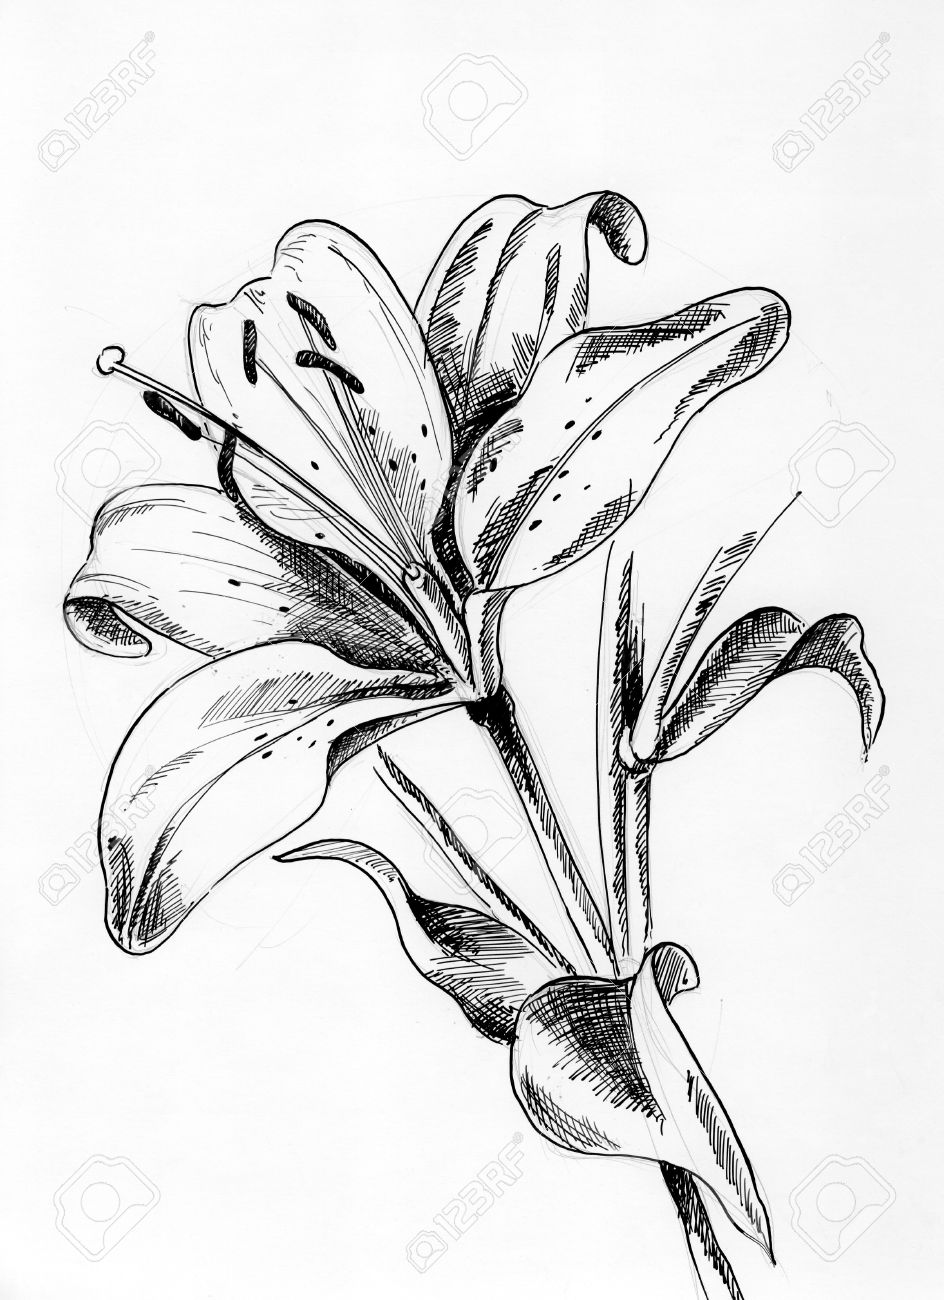 Lilly 1 a single flower drawing with pen and ink stock photo 53550620